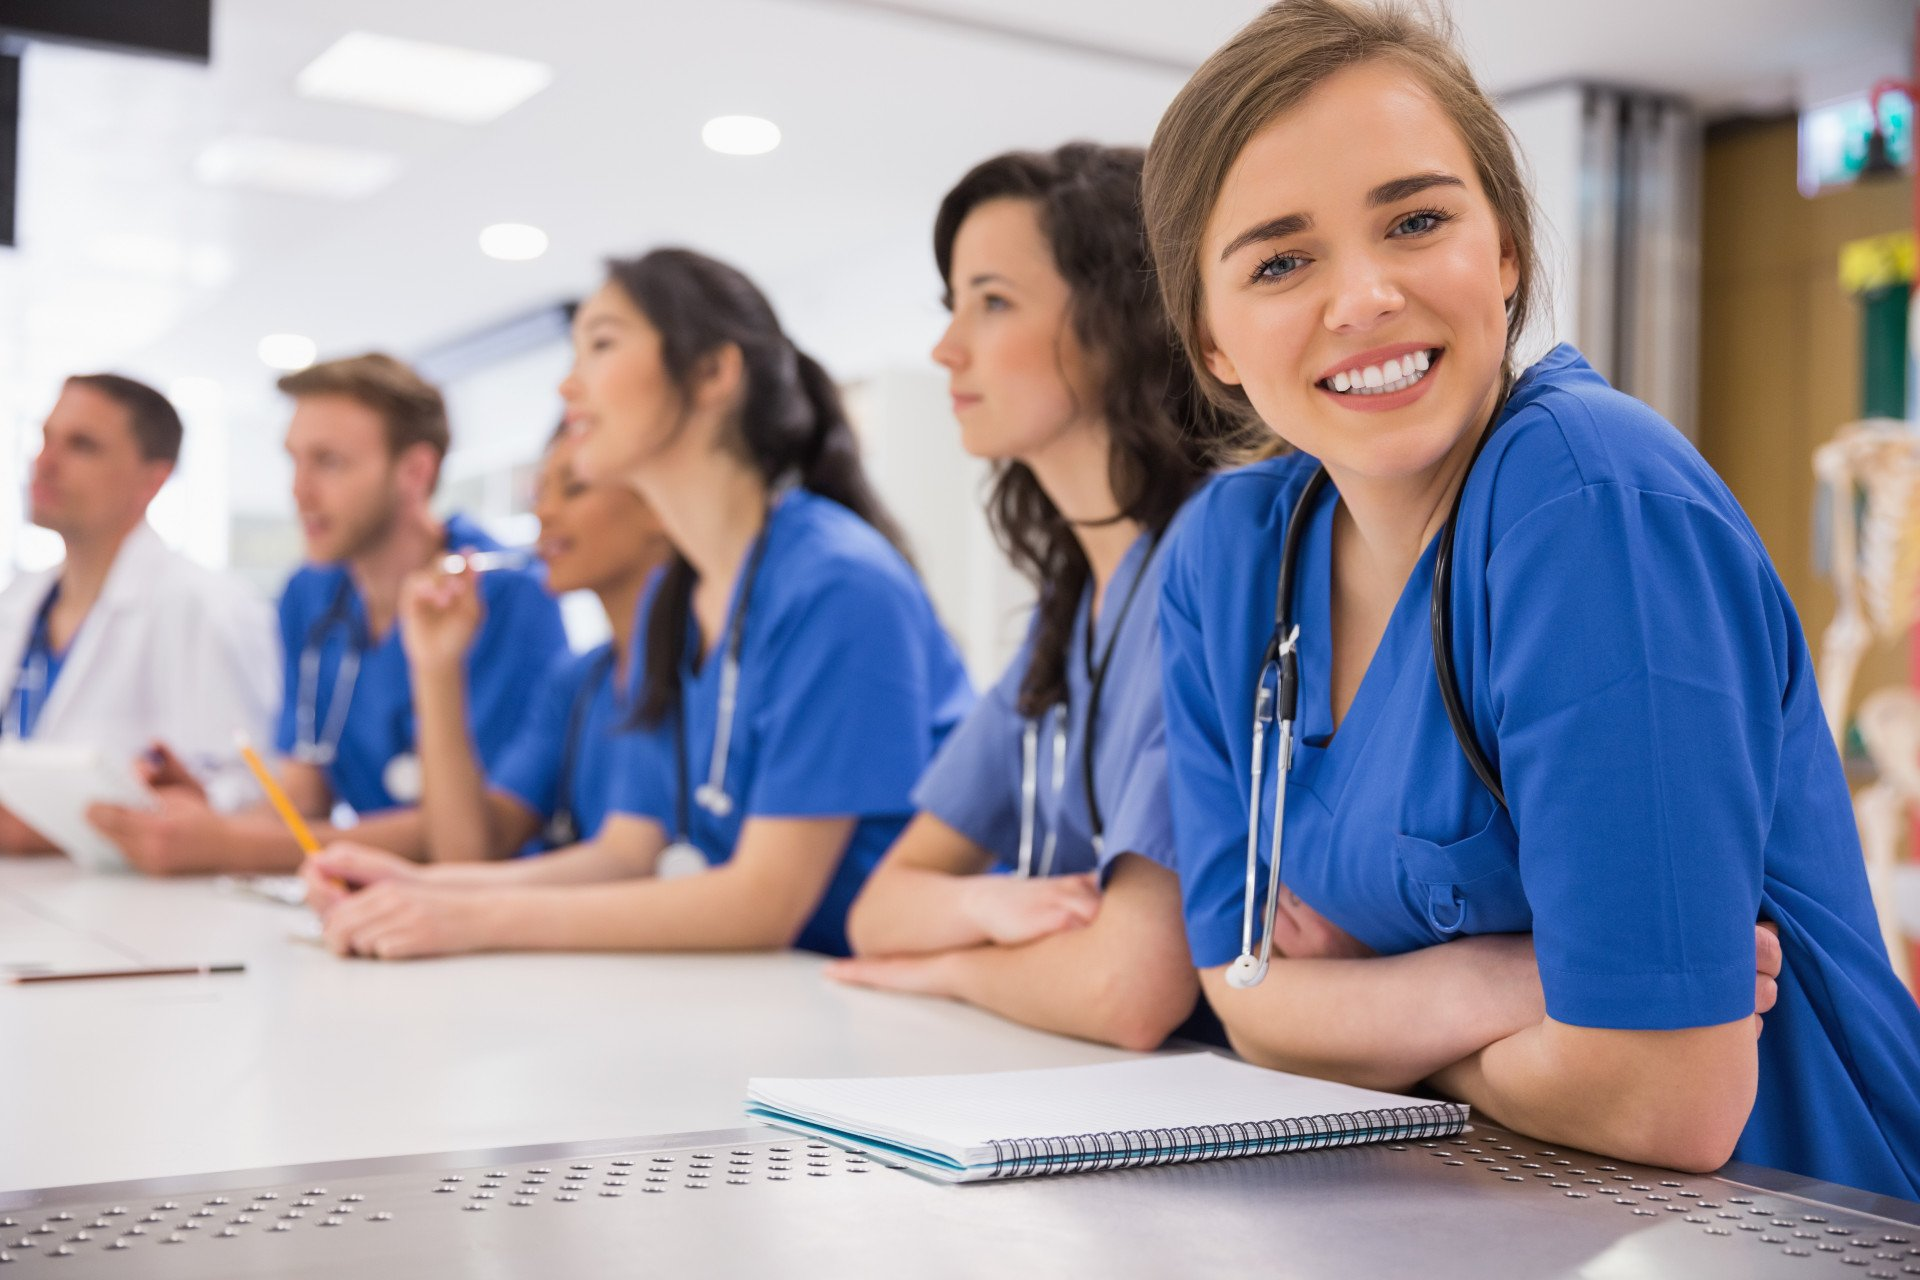 CPR Requirement for Nursing Students